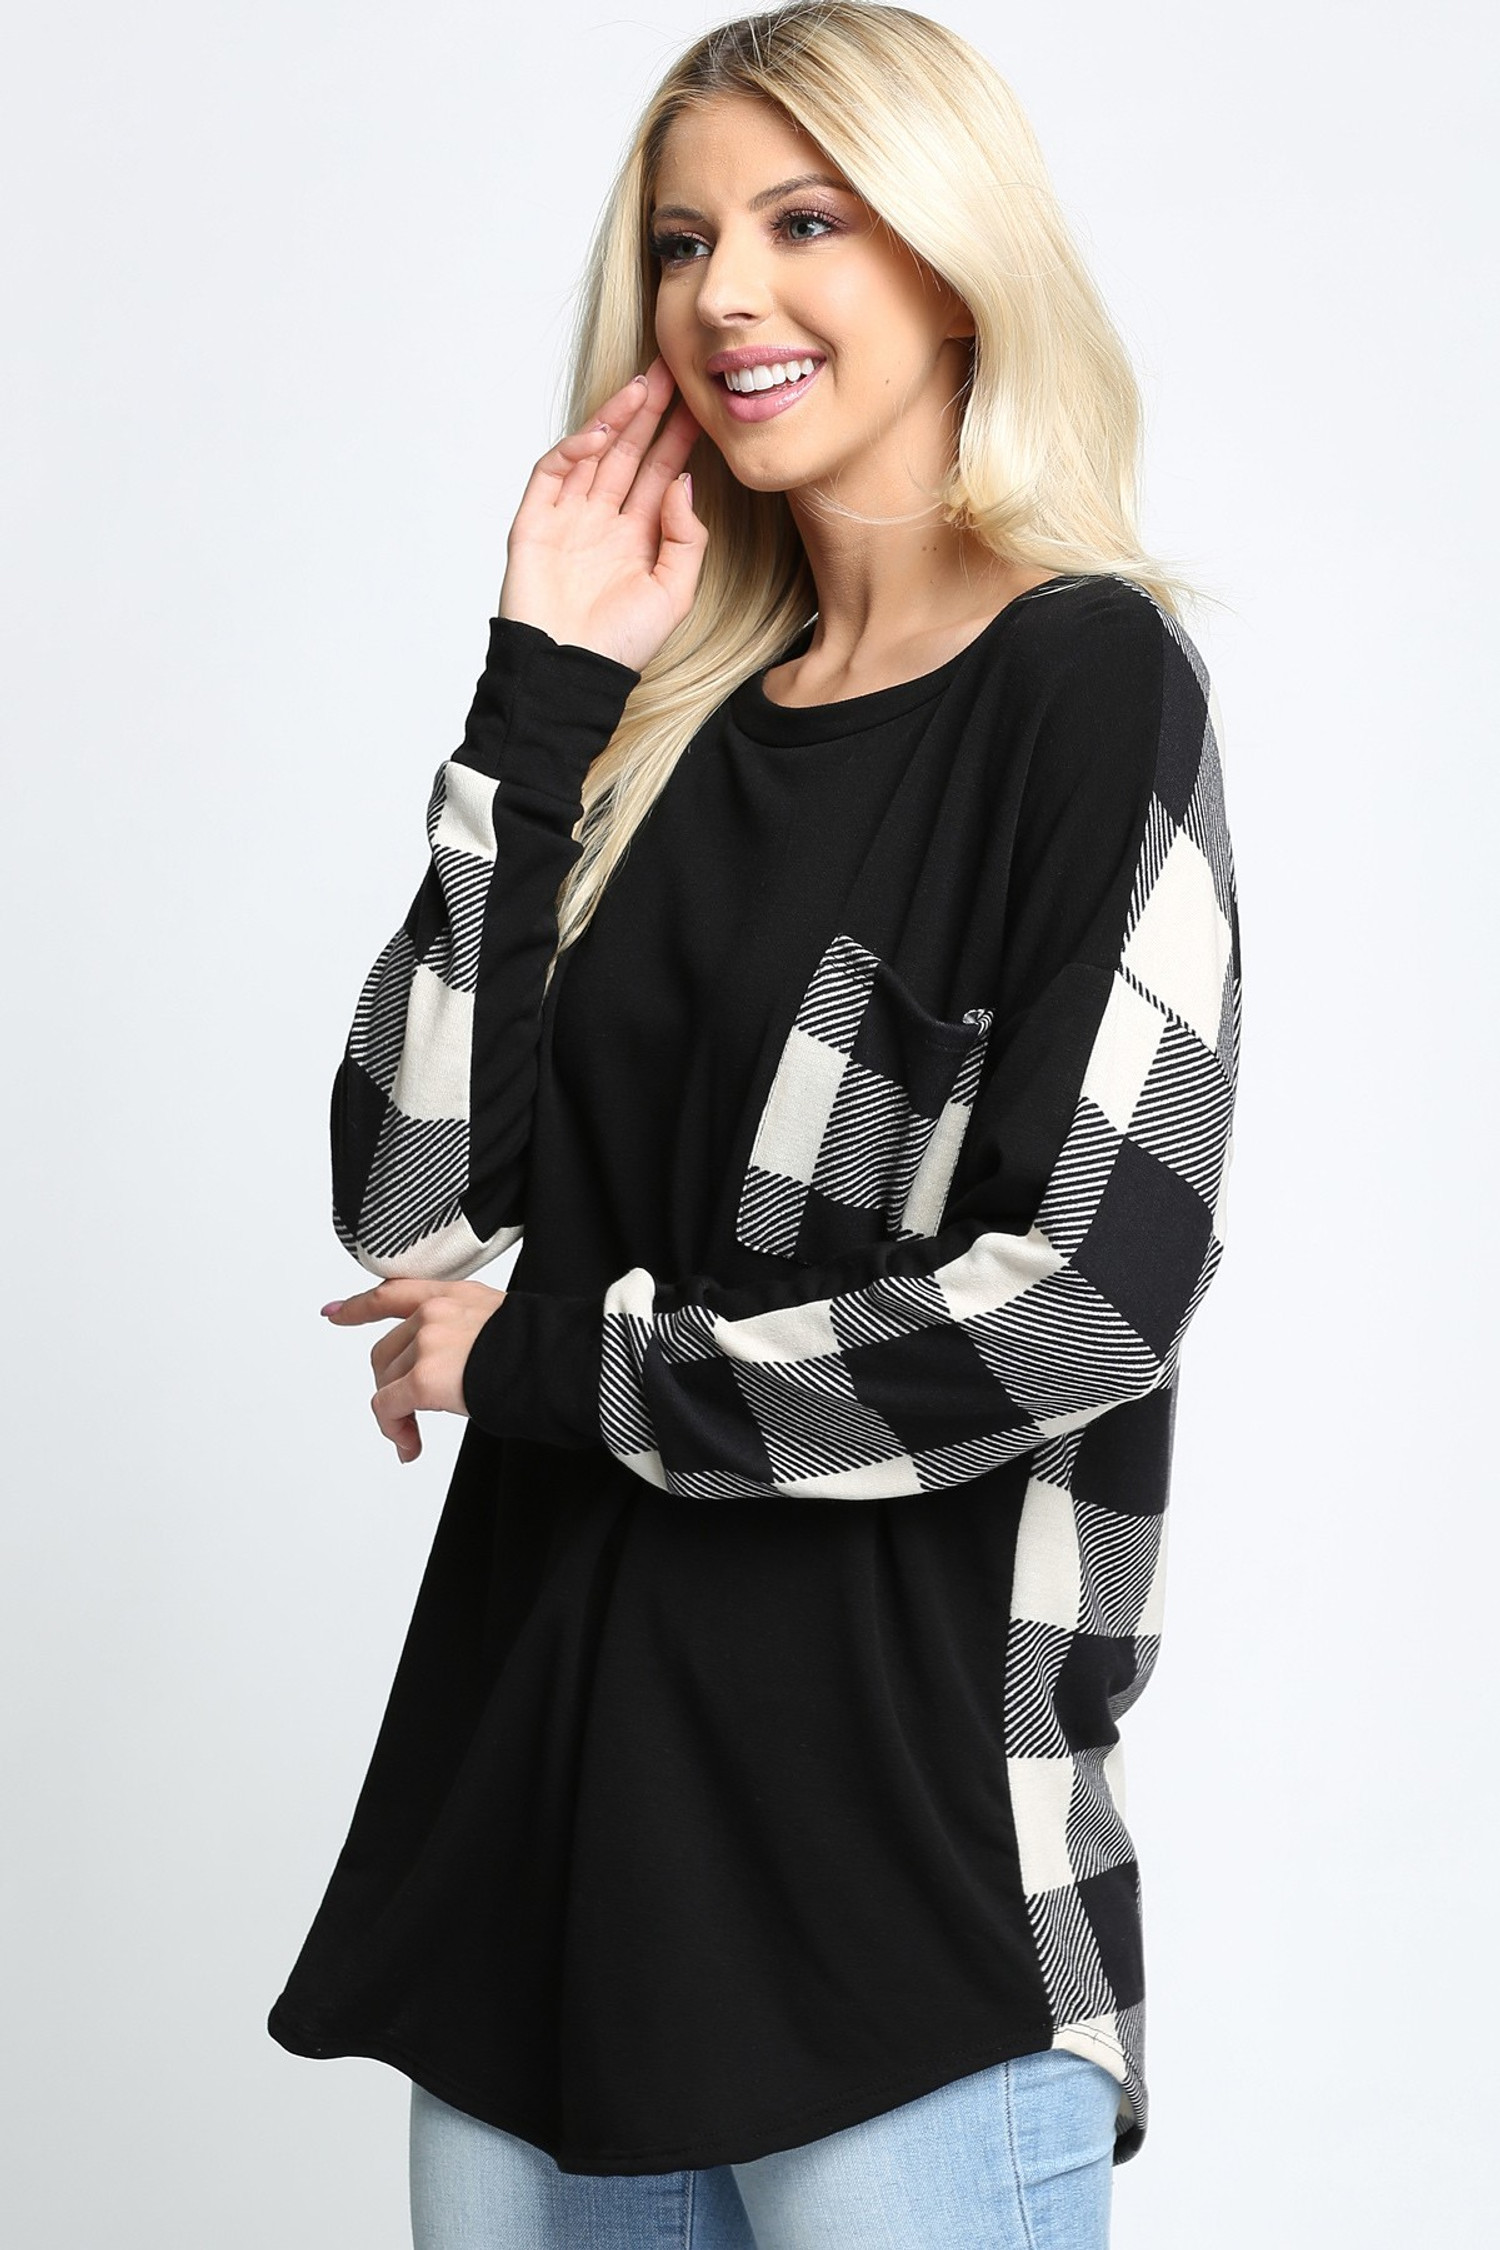 White Plaid Contrast Long Sleeve Top with Front Pocket